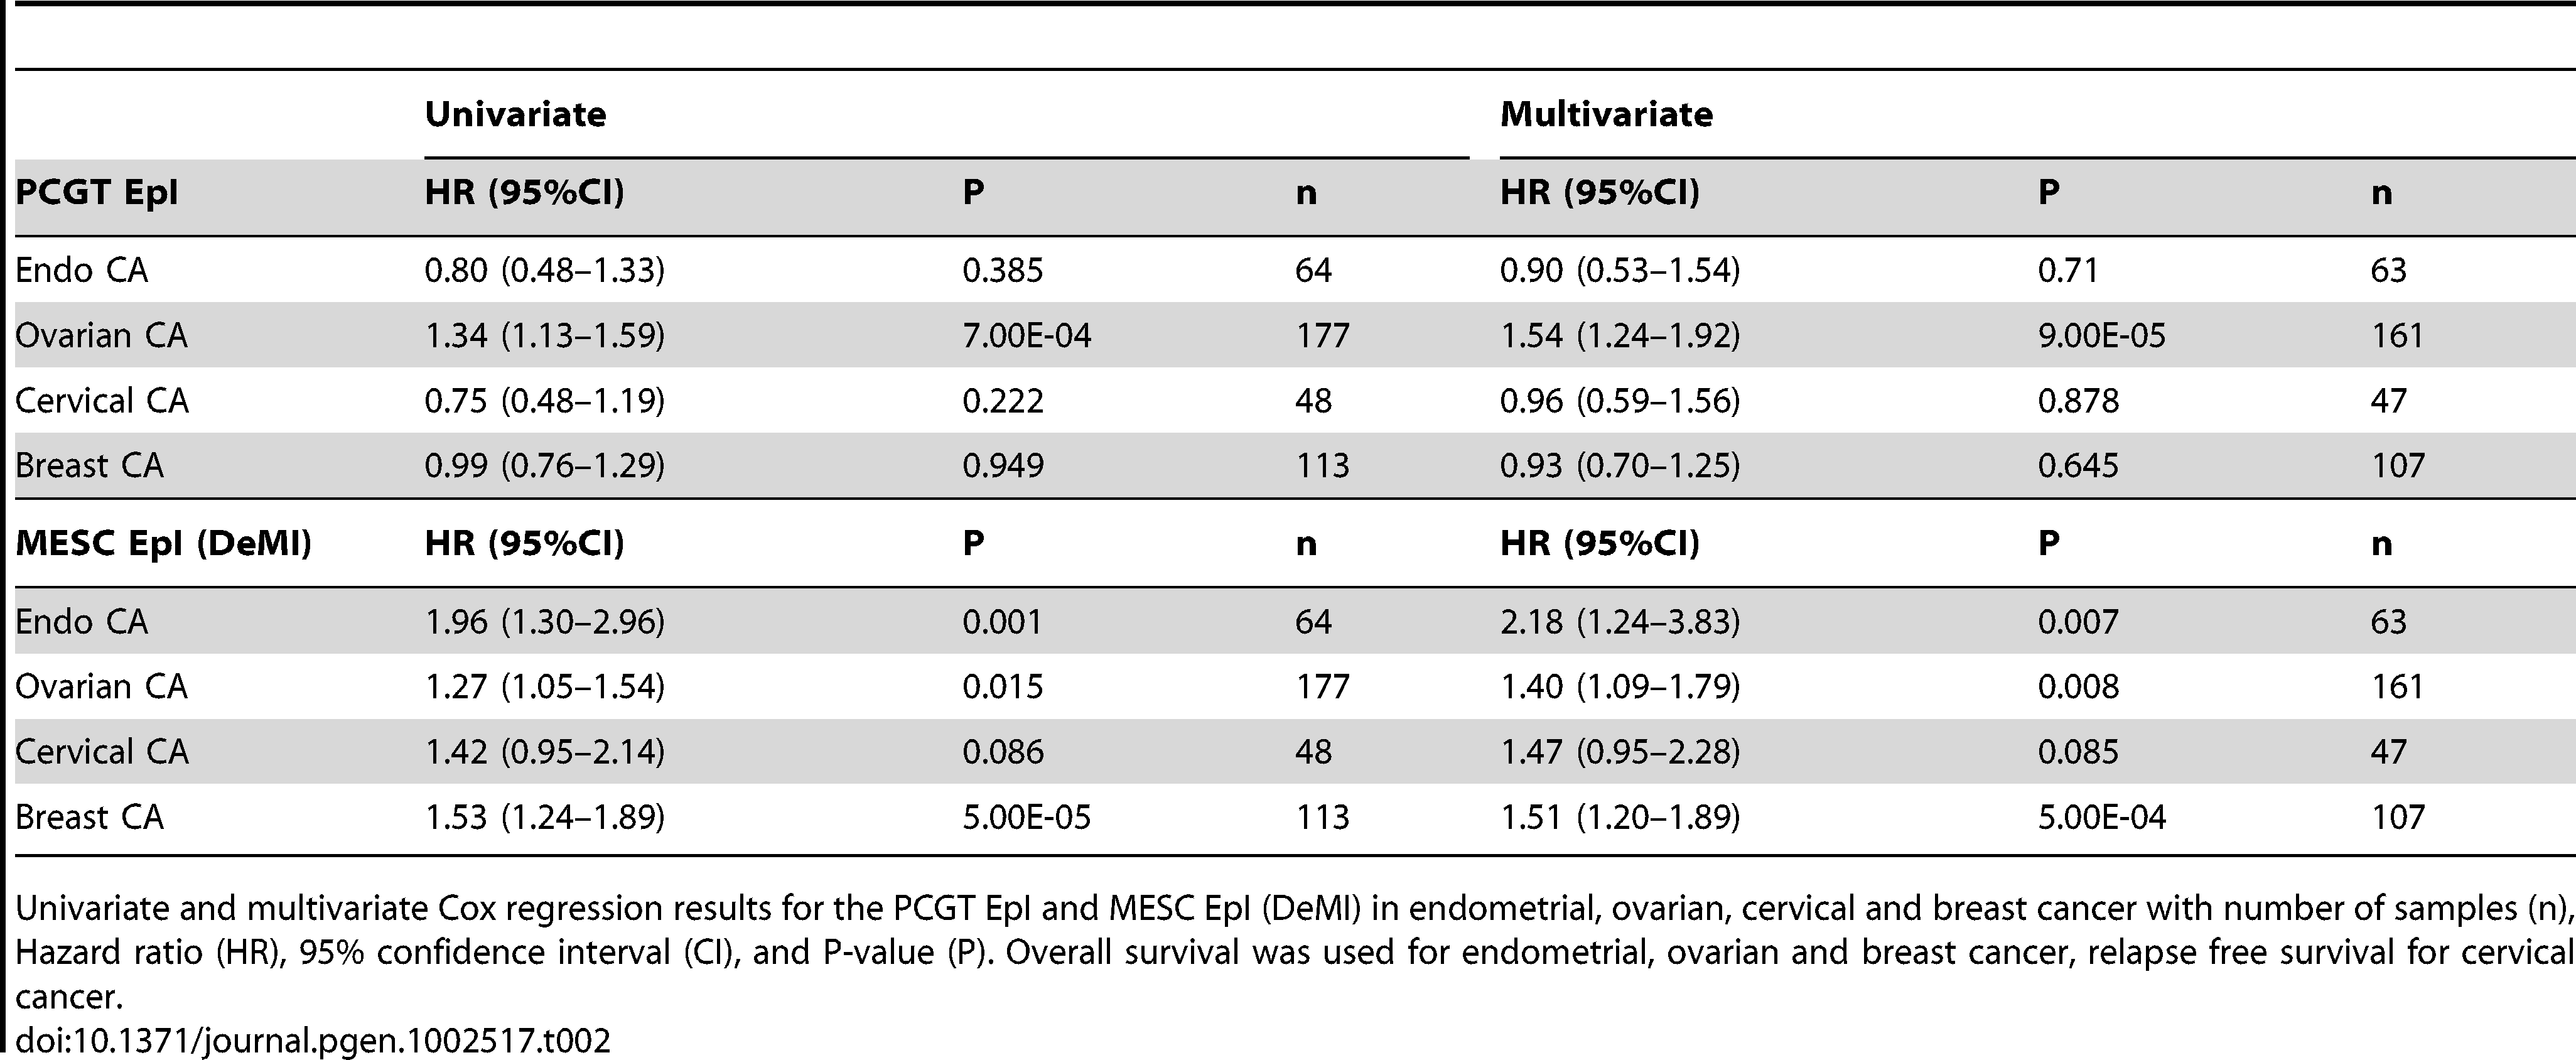 Survival analysis results of the PCGTs and MESCs Epigenetic Instability Index (EpI) in women's cancers.